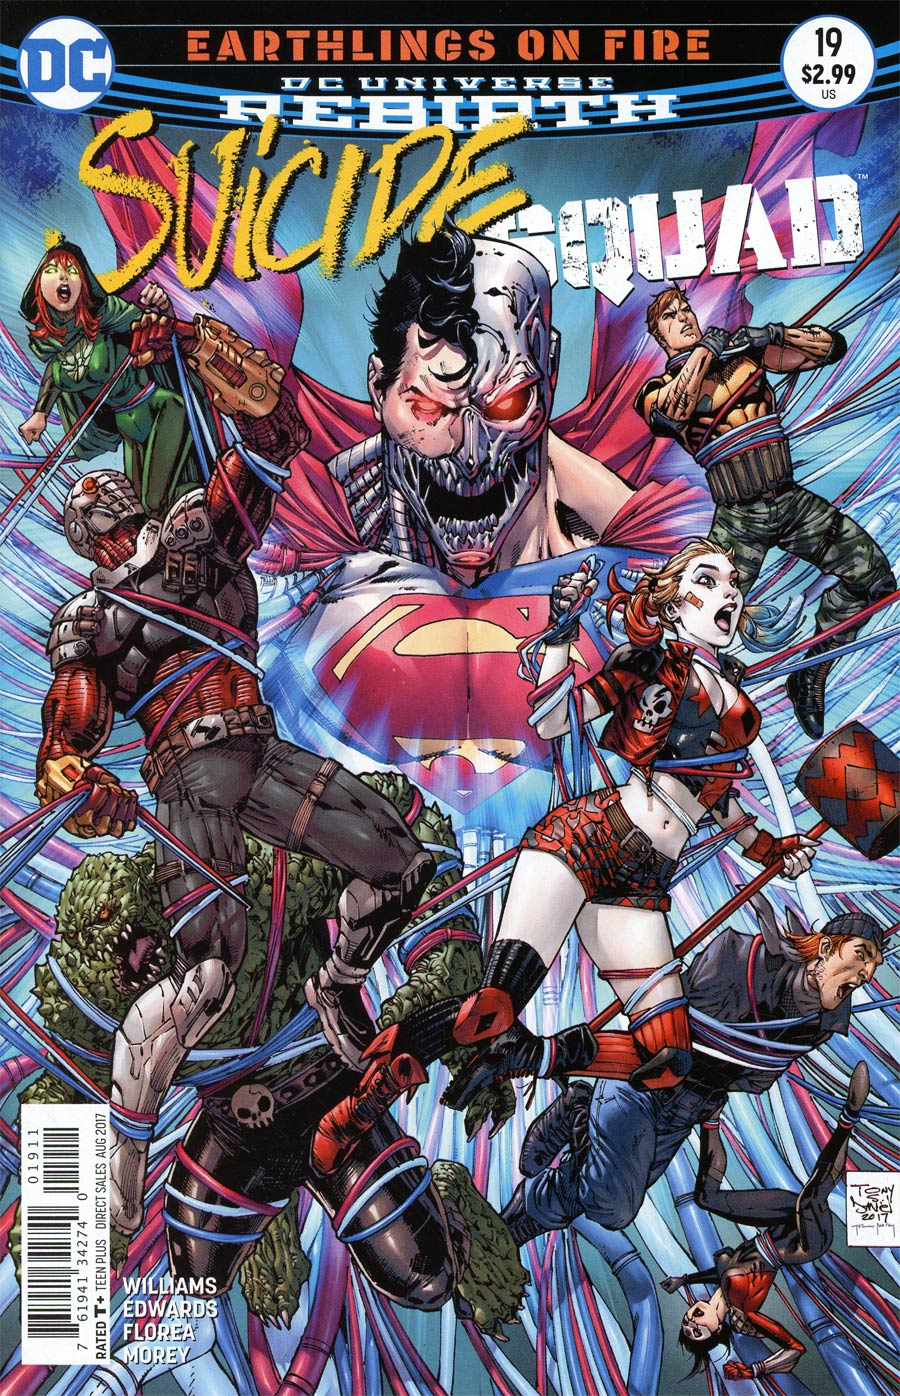 Suicide Squad Vol 4 #19 Cover A Regular Tony S Daniel & Sandu Florea Cover